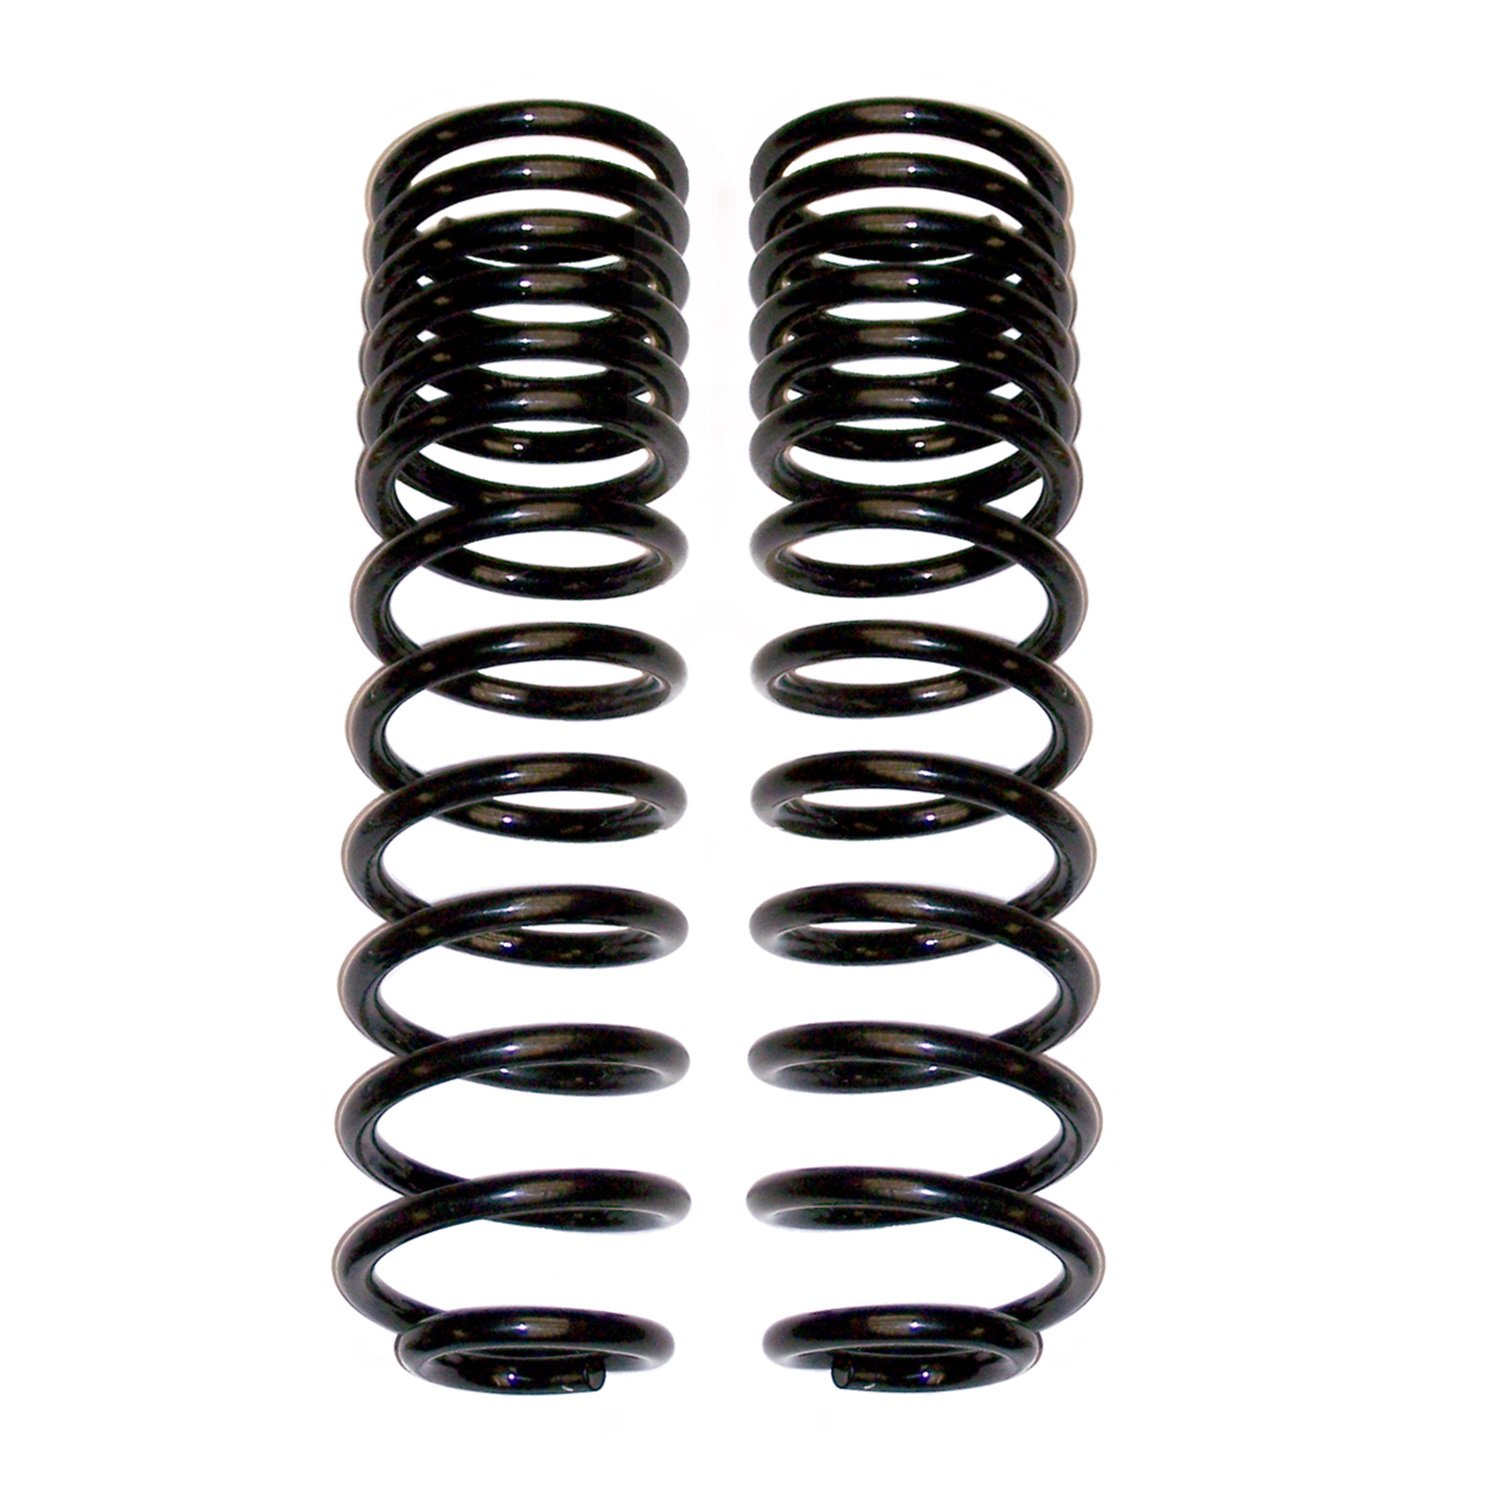 Superlift 296 Coil Springs 6in